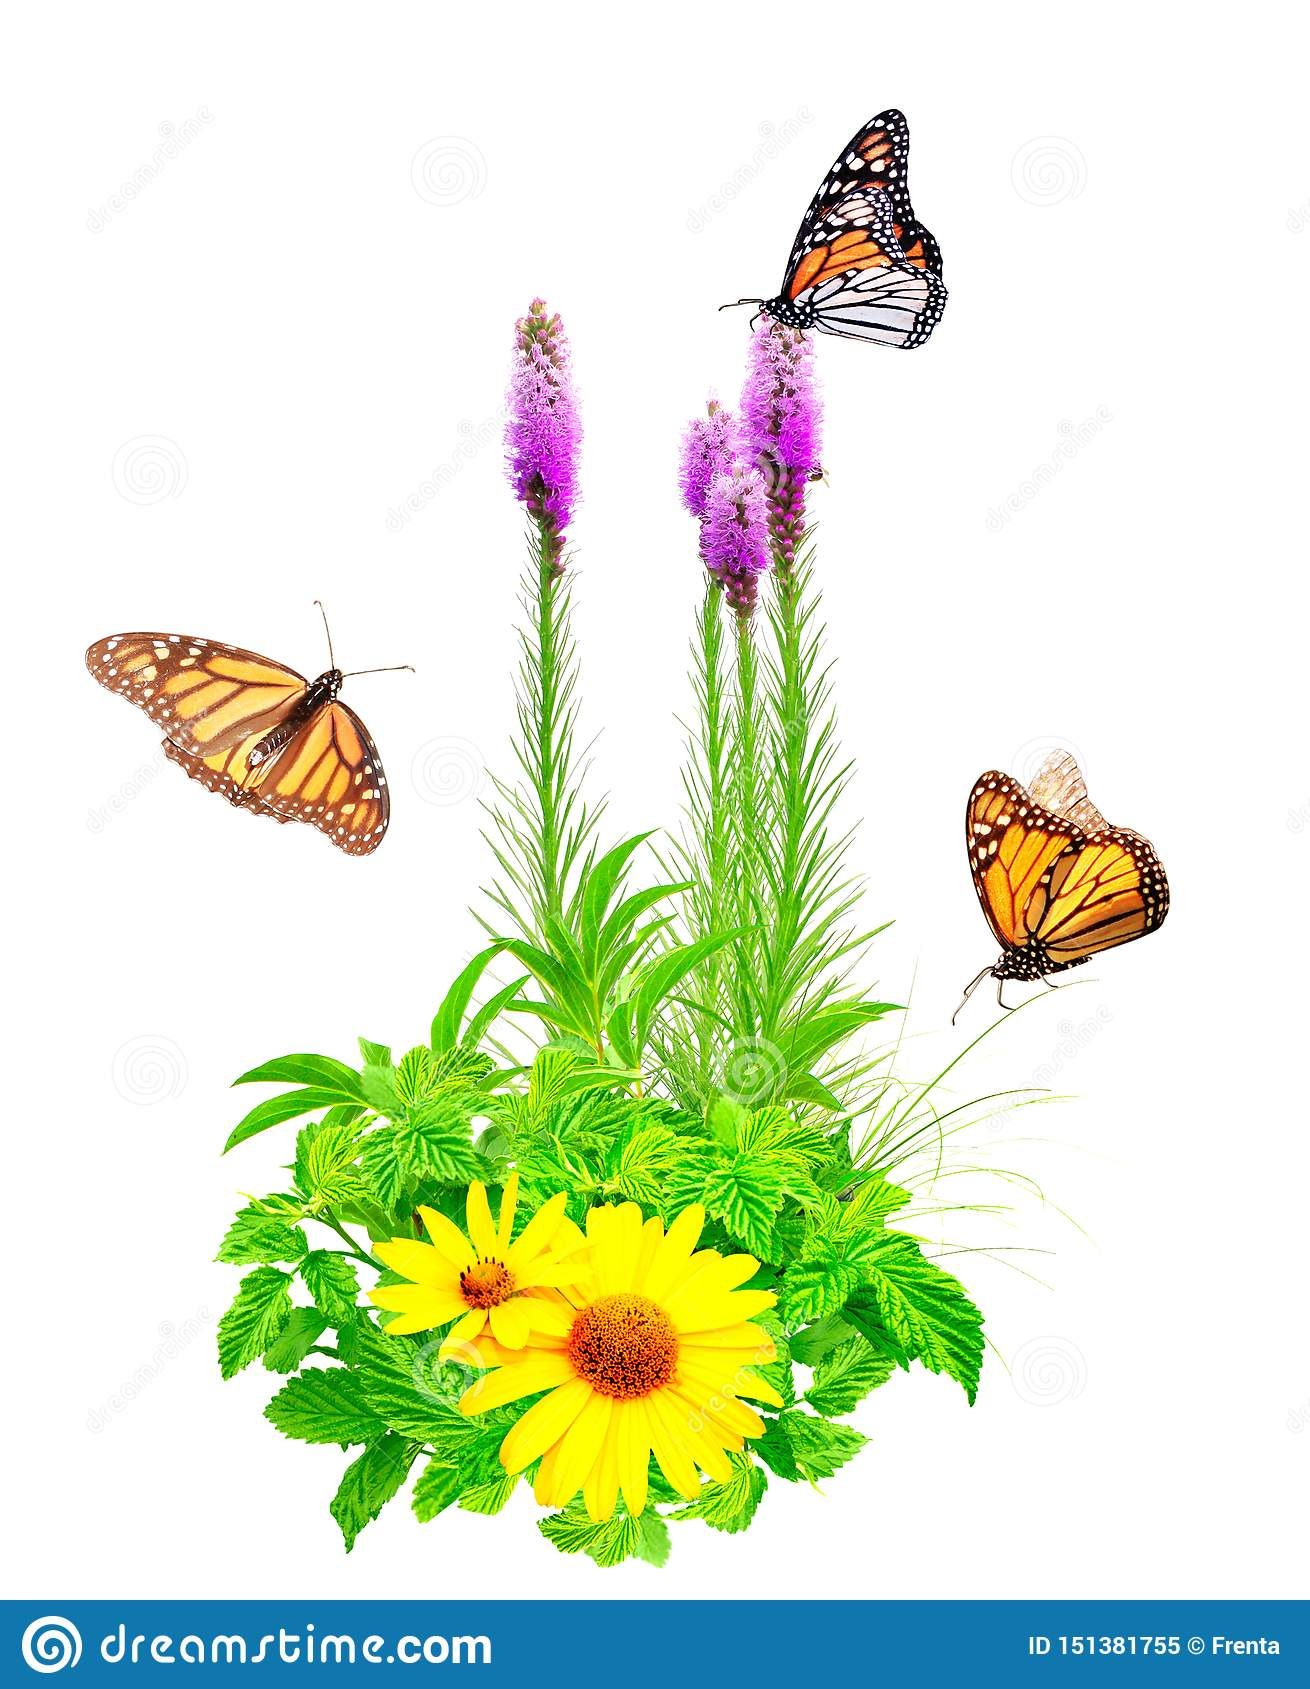 Summer flowers, green leaves and monarch butterflies